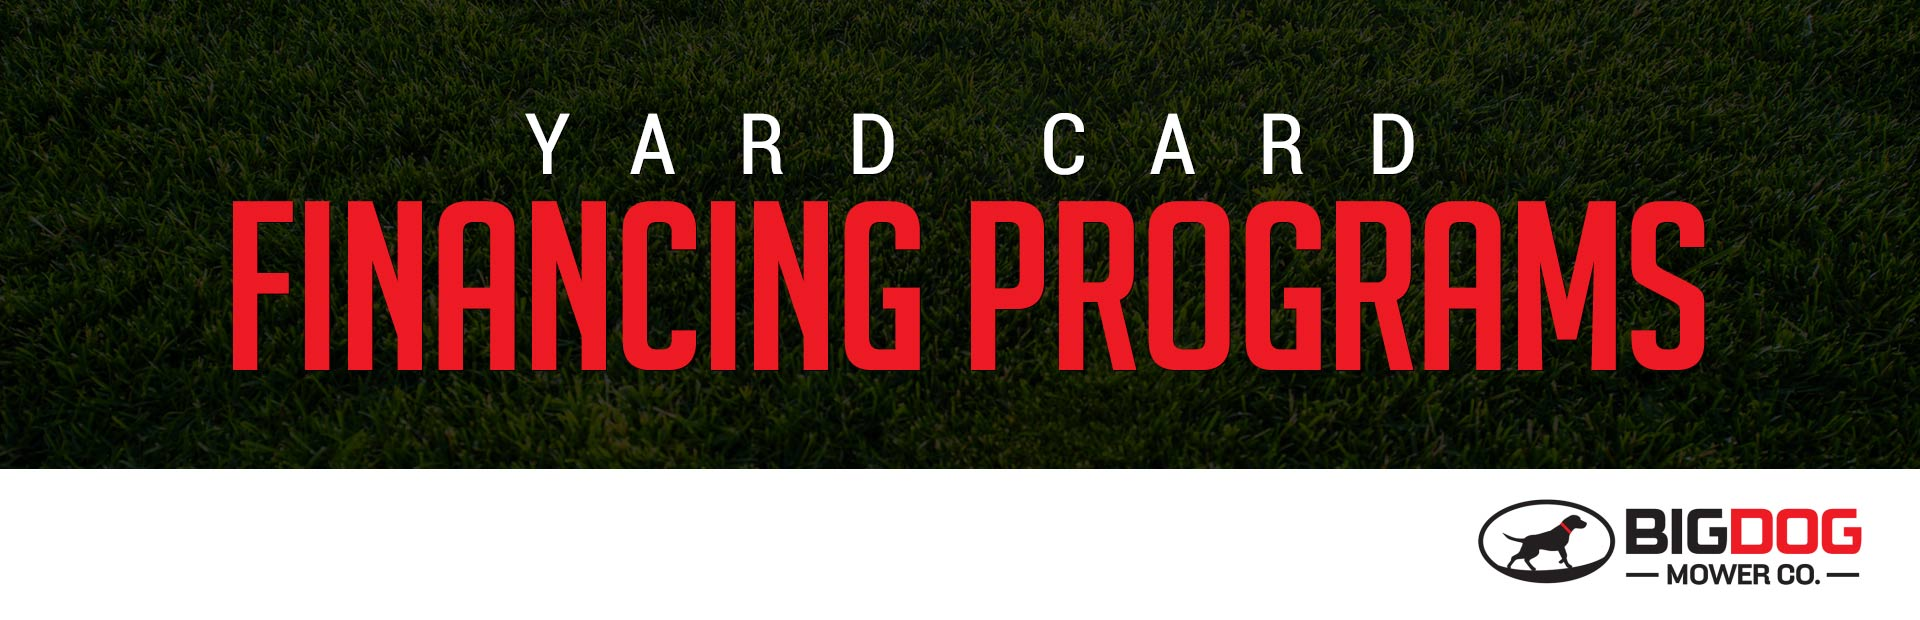 BigDog Mowers: Yard Card Financing Programs